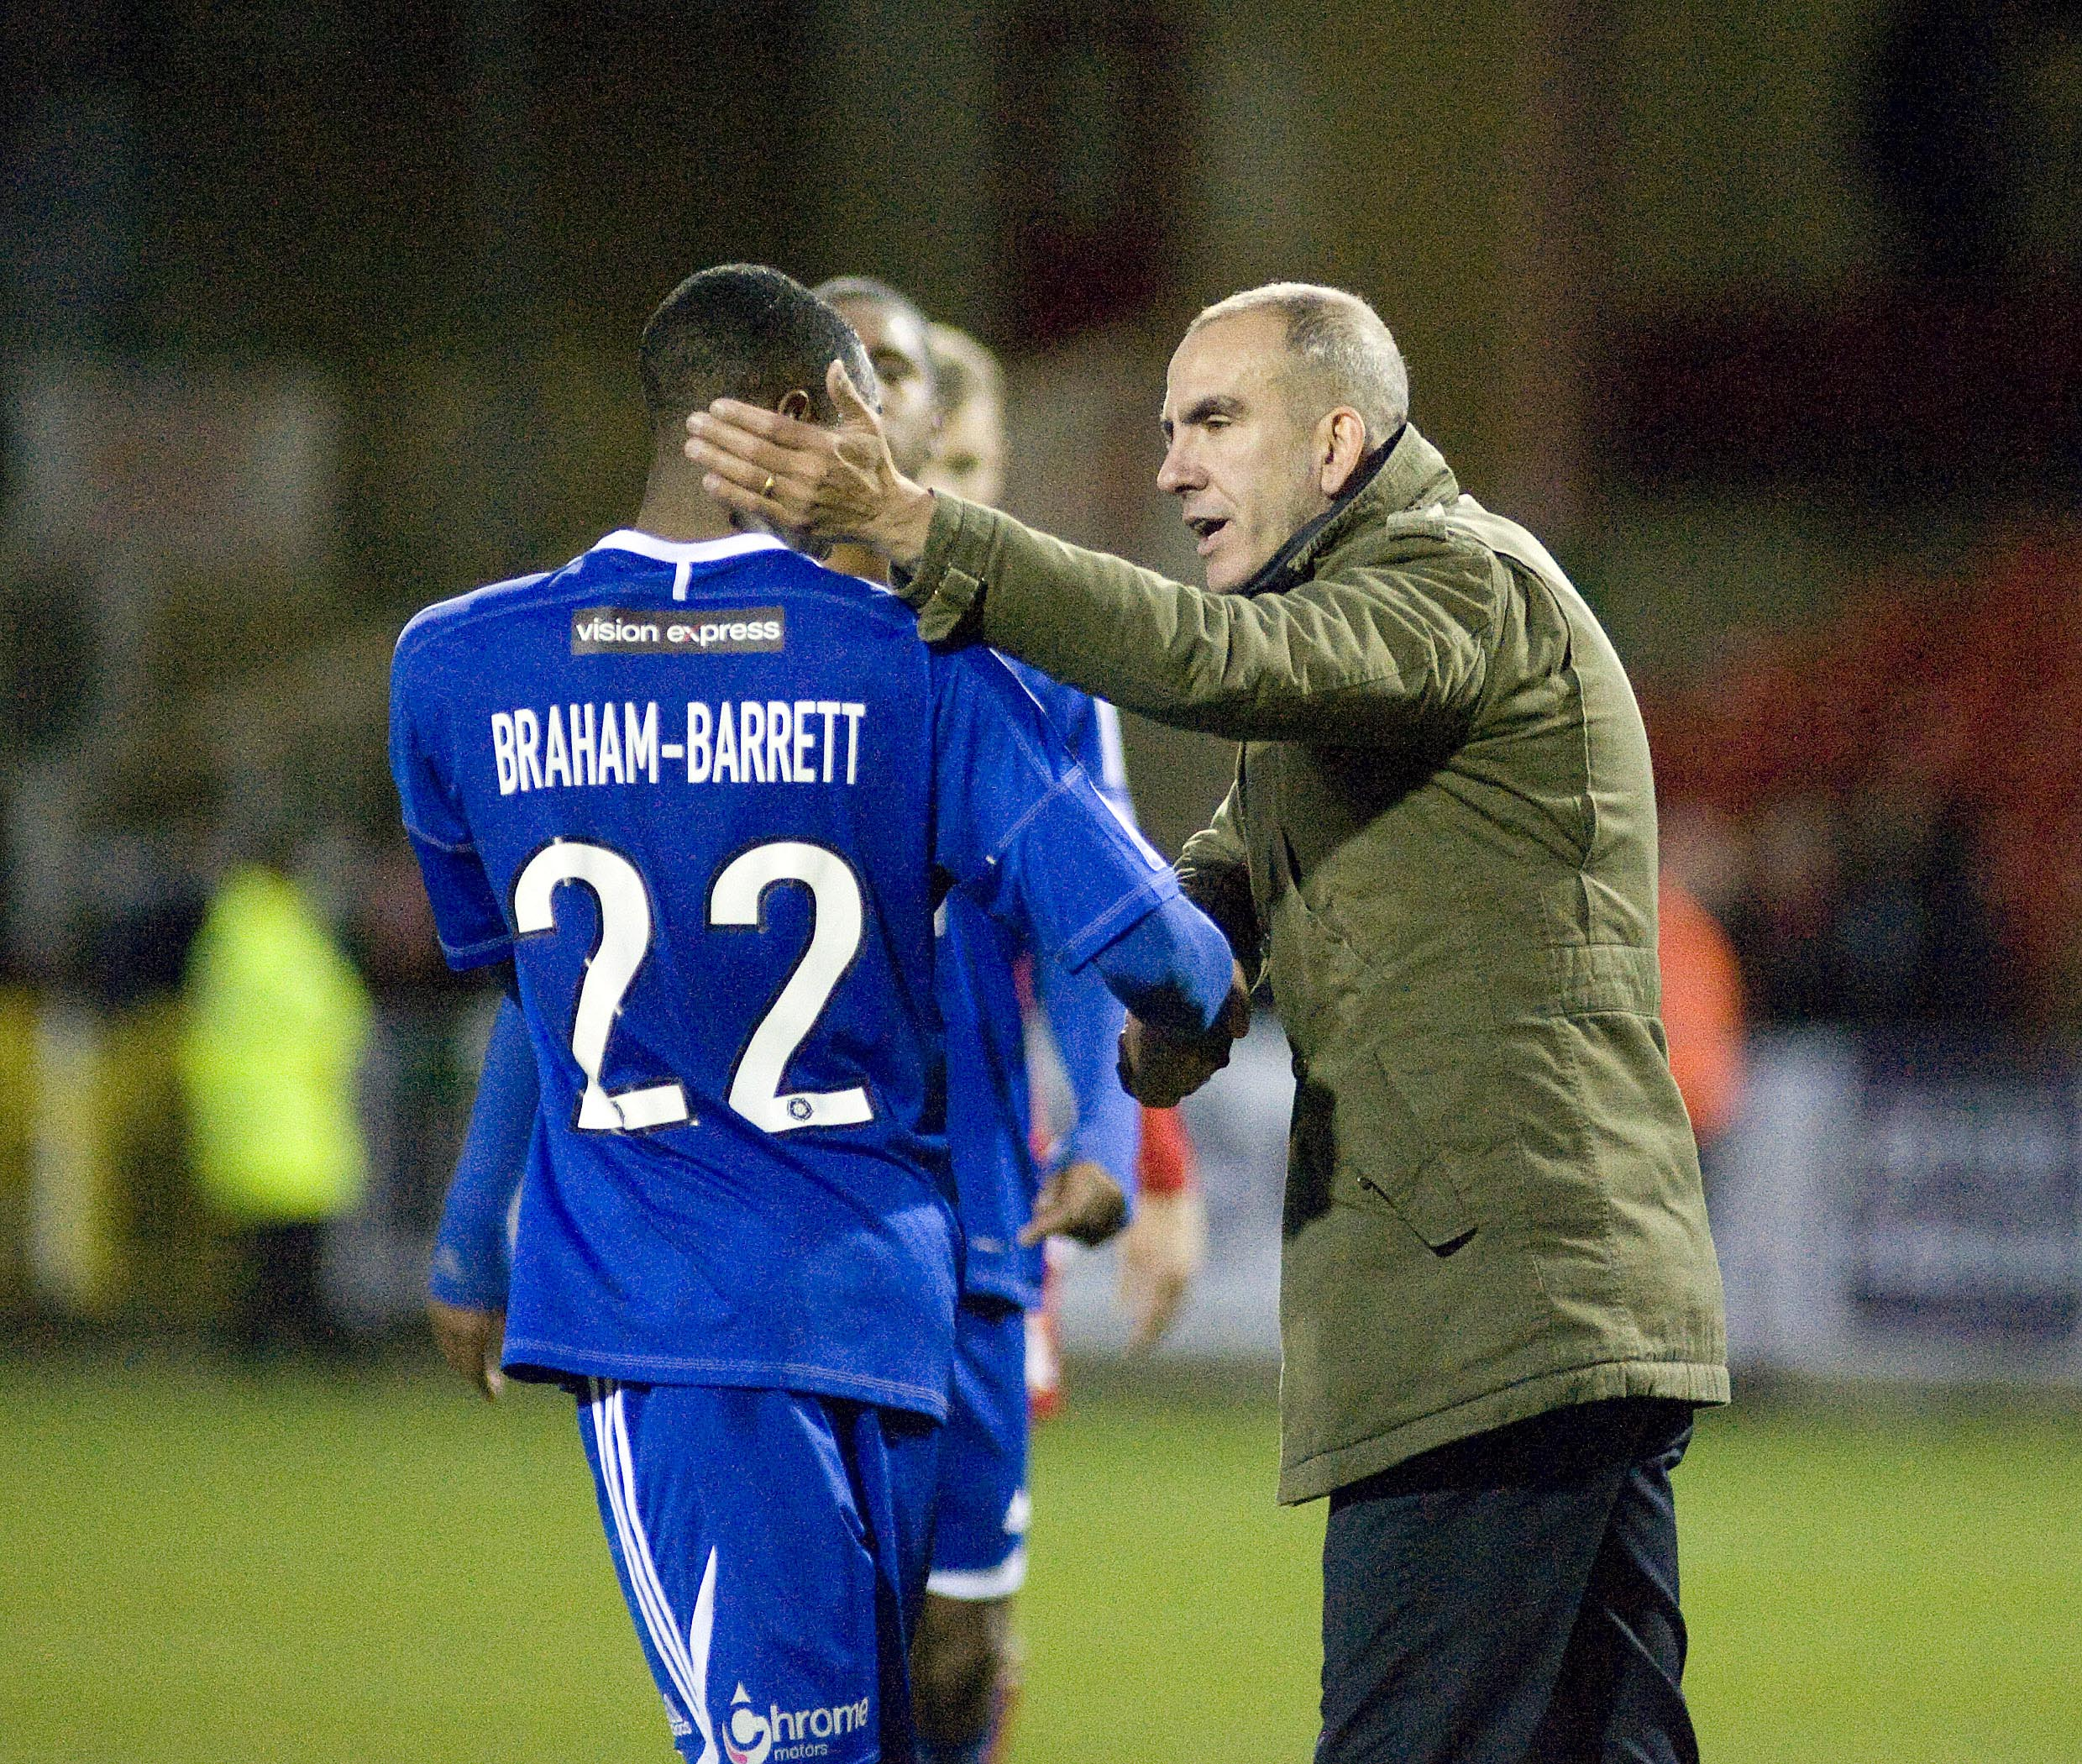 Swindon Town 0-2 Macclesfield Town: Report & Gallery